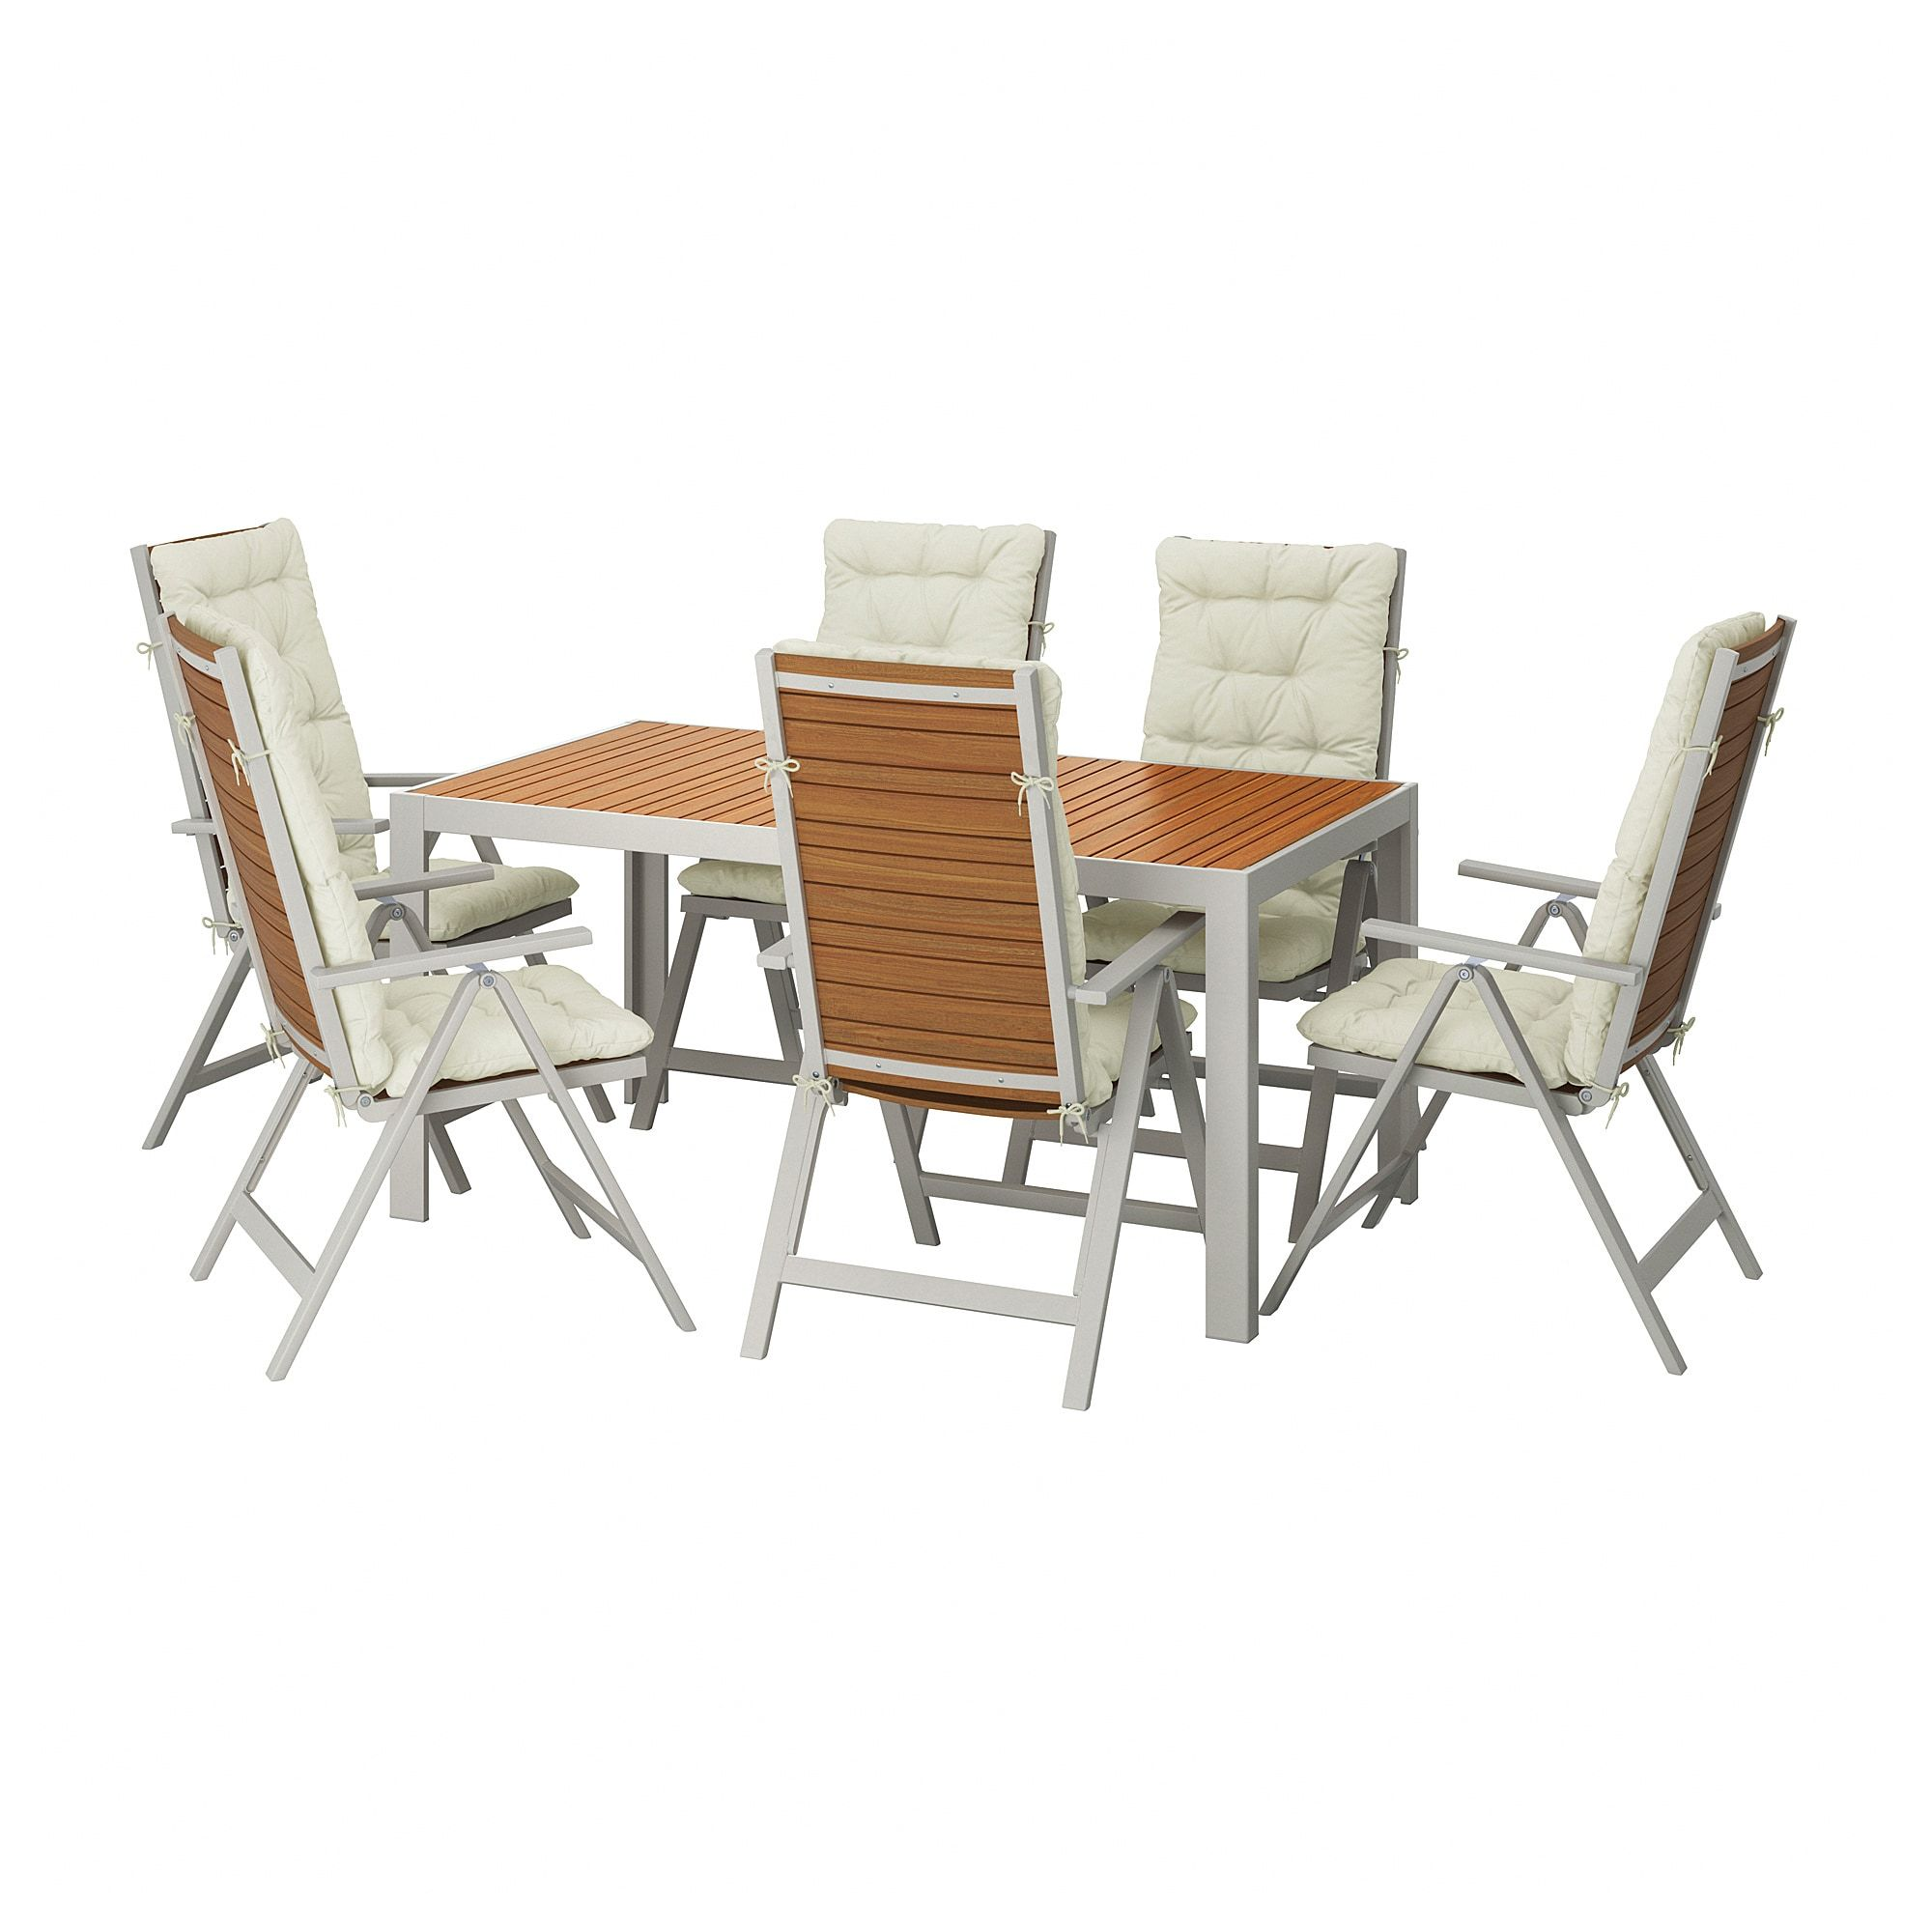 Magnificent Table 6 Reclining Chairs Outdoor Sjalland Light Brown Unemploymentrelief Wooden Chair Designs For Living Room Unemploymentrelieforg